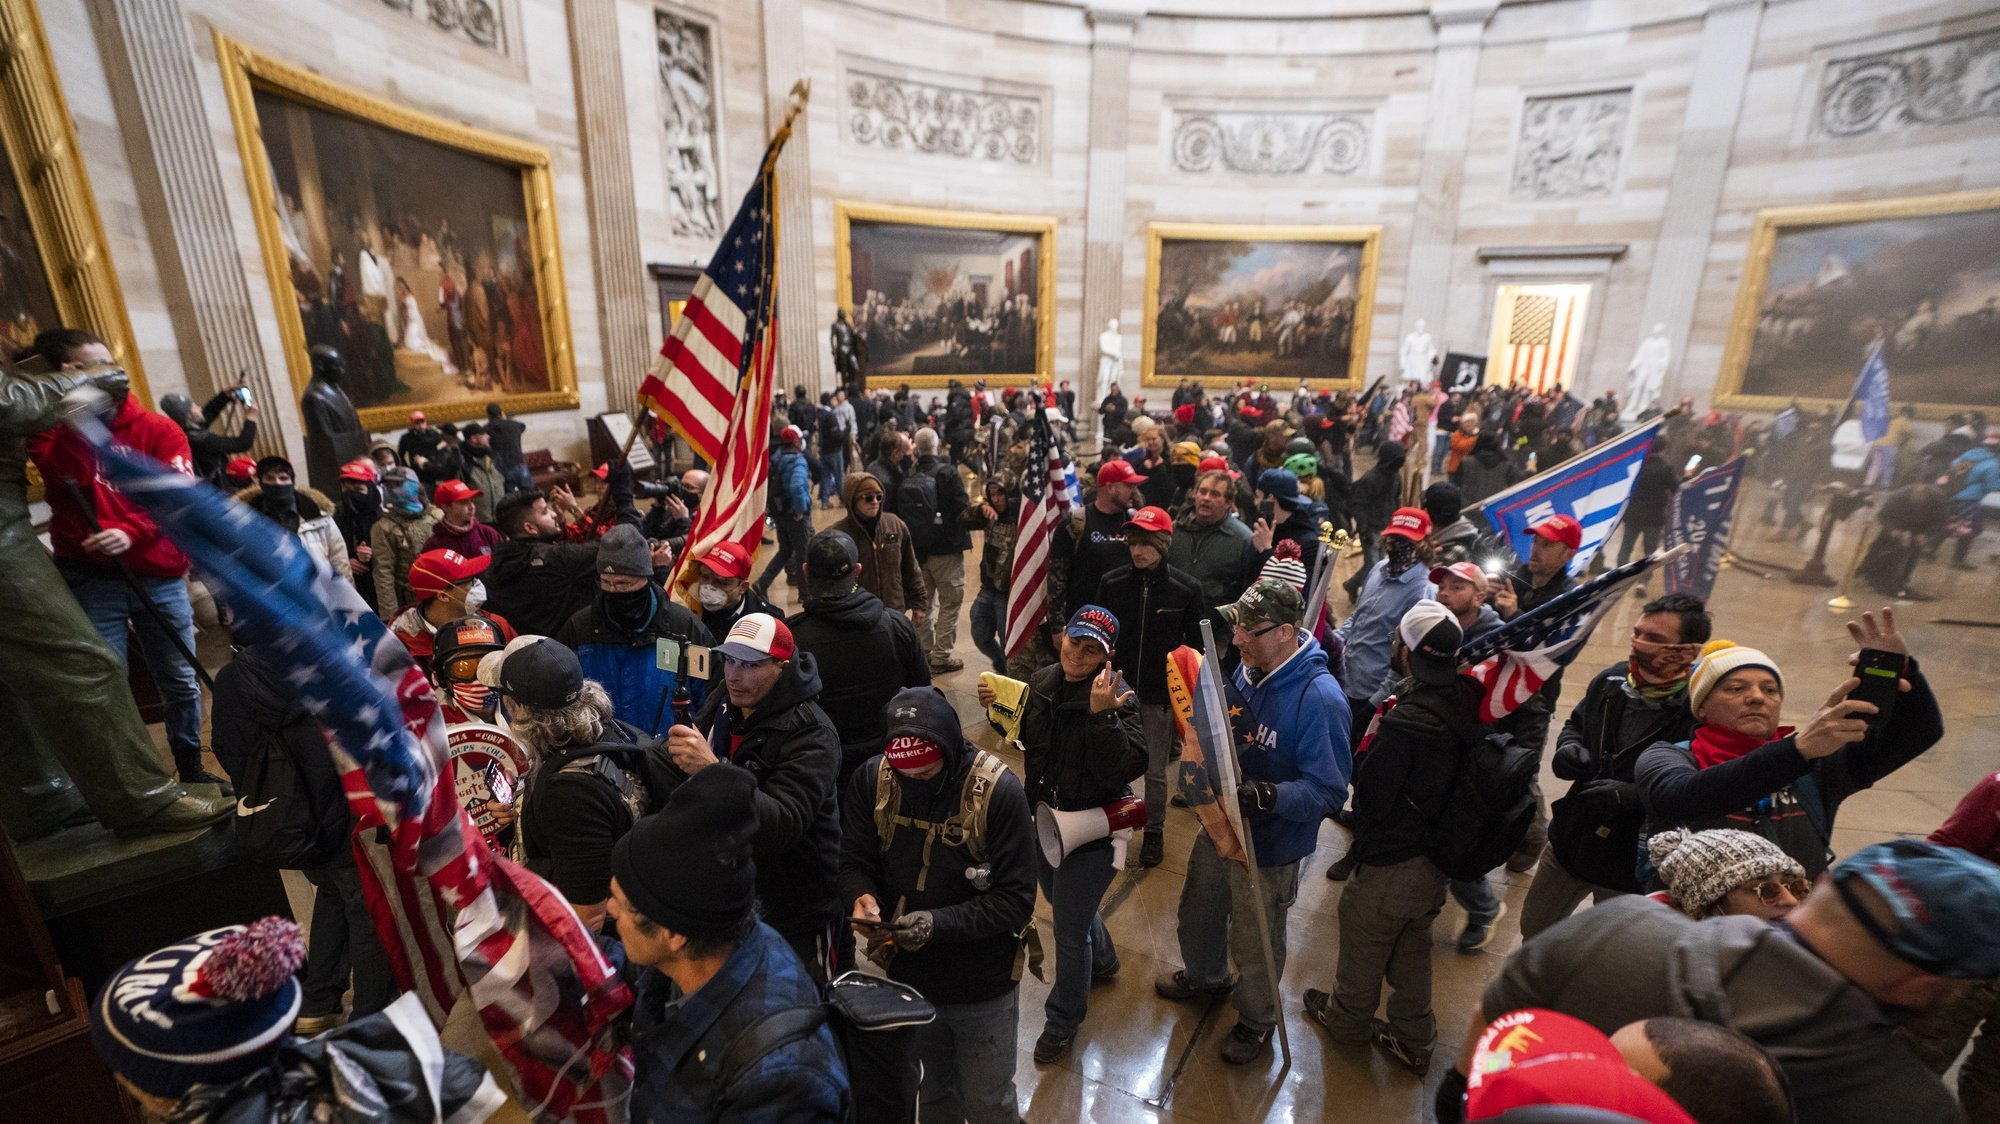 epaselect epa08923423 Supporters of US President Donald J. Trump in the Capitol Rotunda after breaching Capitol security in Washington, DC, USA, 06 January 2021. Protesters entered the US Capitol where the Electoral College vote certification for President-elect Joe Biden took place.  EPA/JIM LO SCALZO